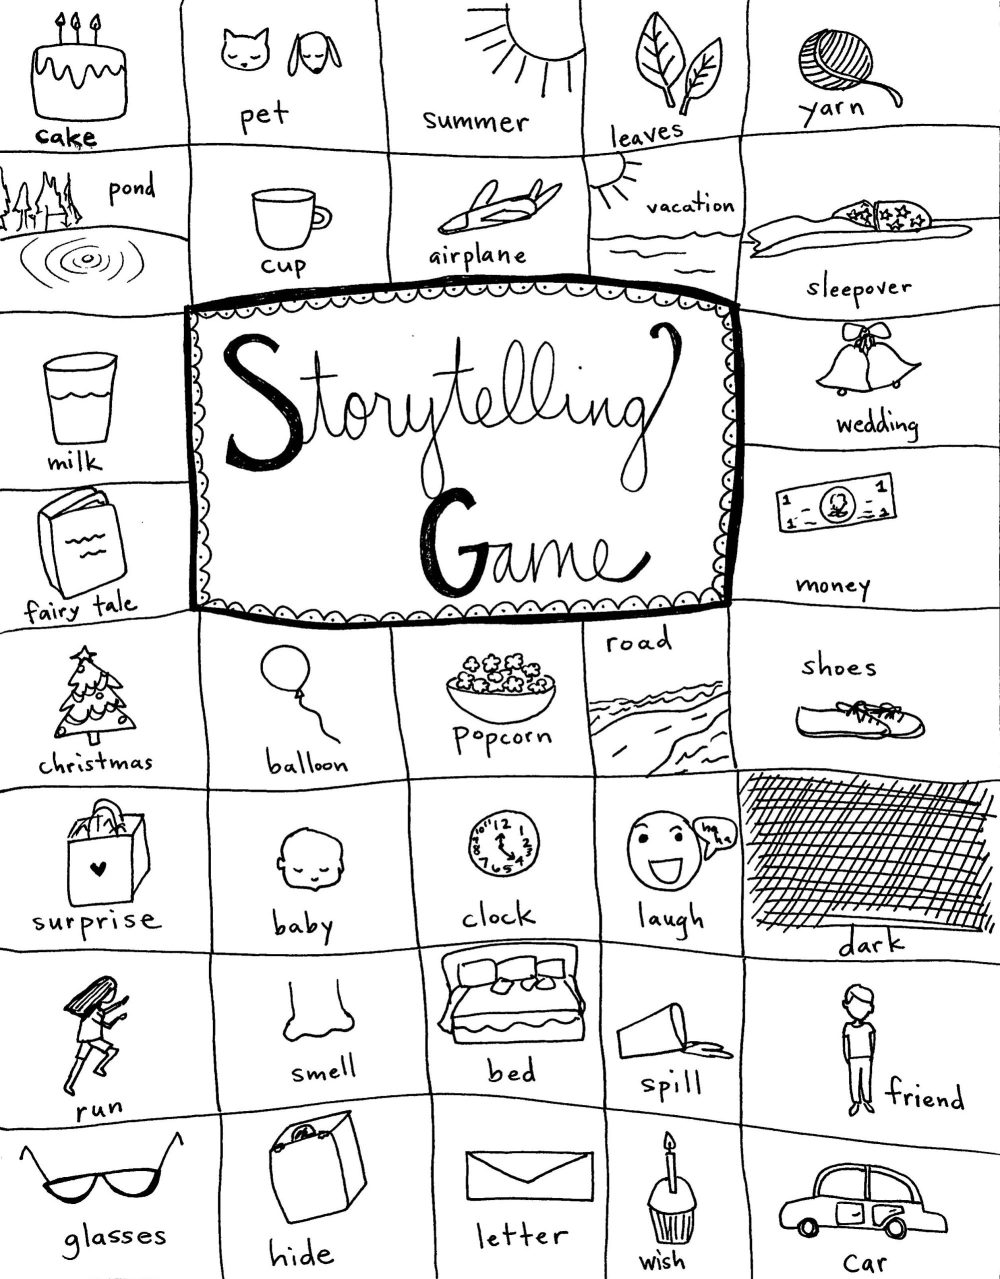 Storytelling Game Handout, free printable from the Creative Family Idea Box by Mackenzie Chester